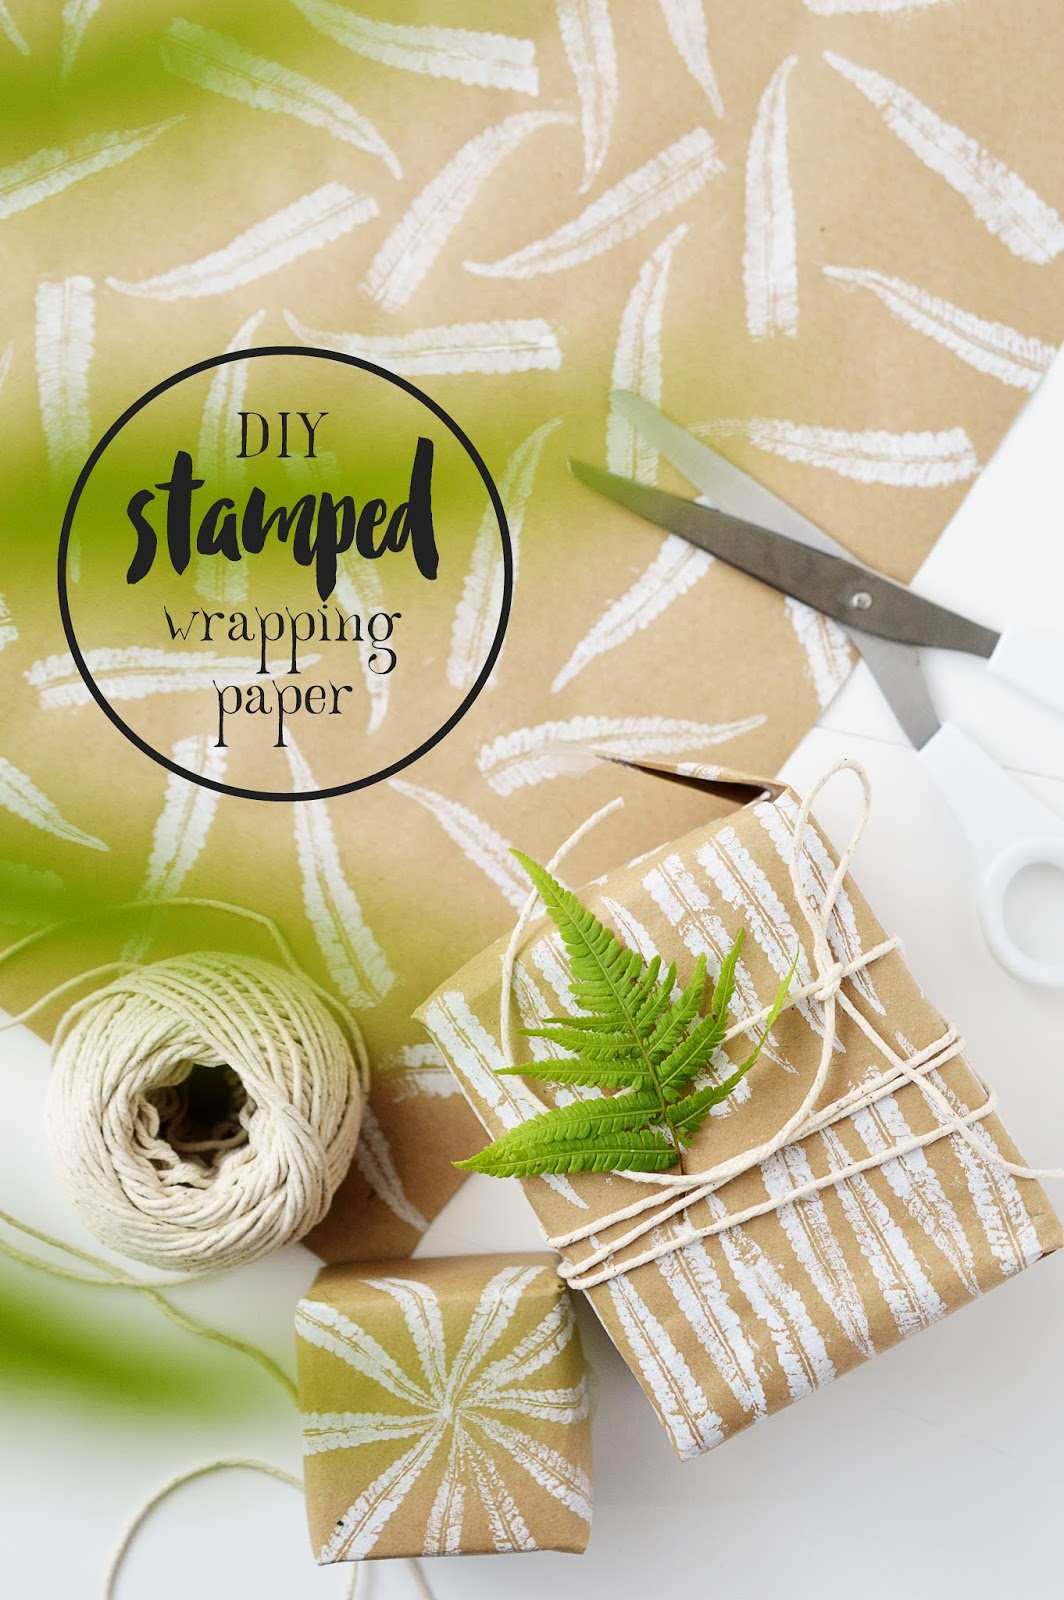 Ferntastic | DIY STAMPED WRAPPING PAPER